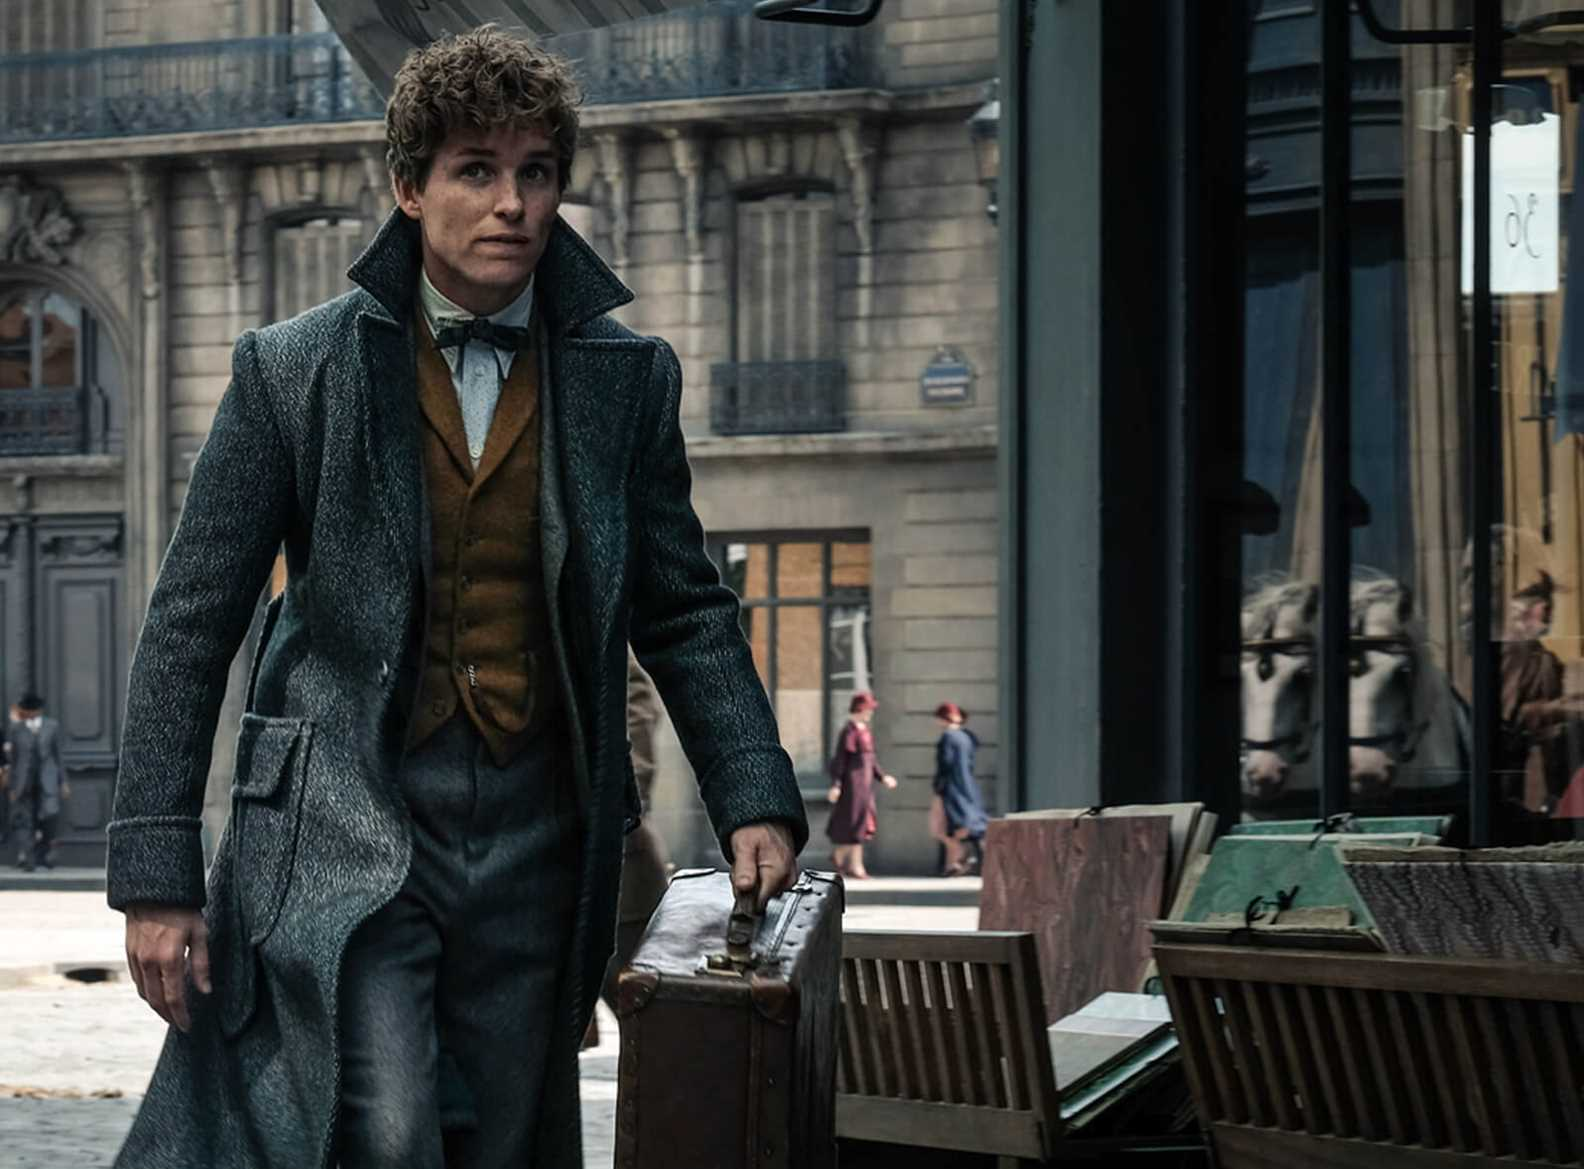 Movie Review: Fantastic Beasts 2 – The Crimes of Grindelwald